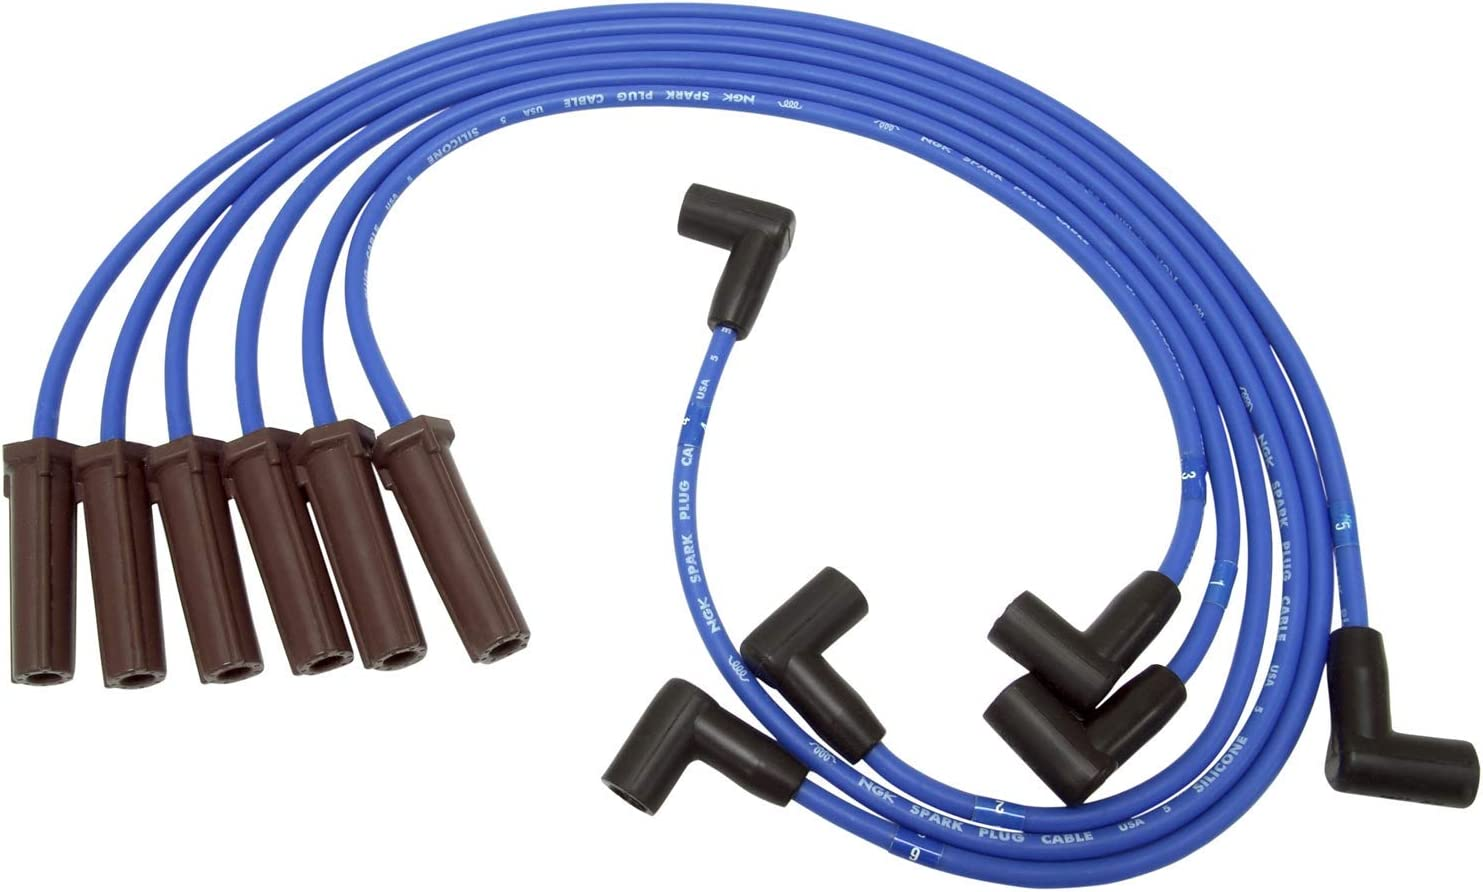 NGK 51026 RC-GMX094 Spark Plug Max 86% OFF Wire Set Limited price sale